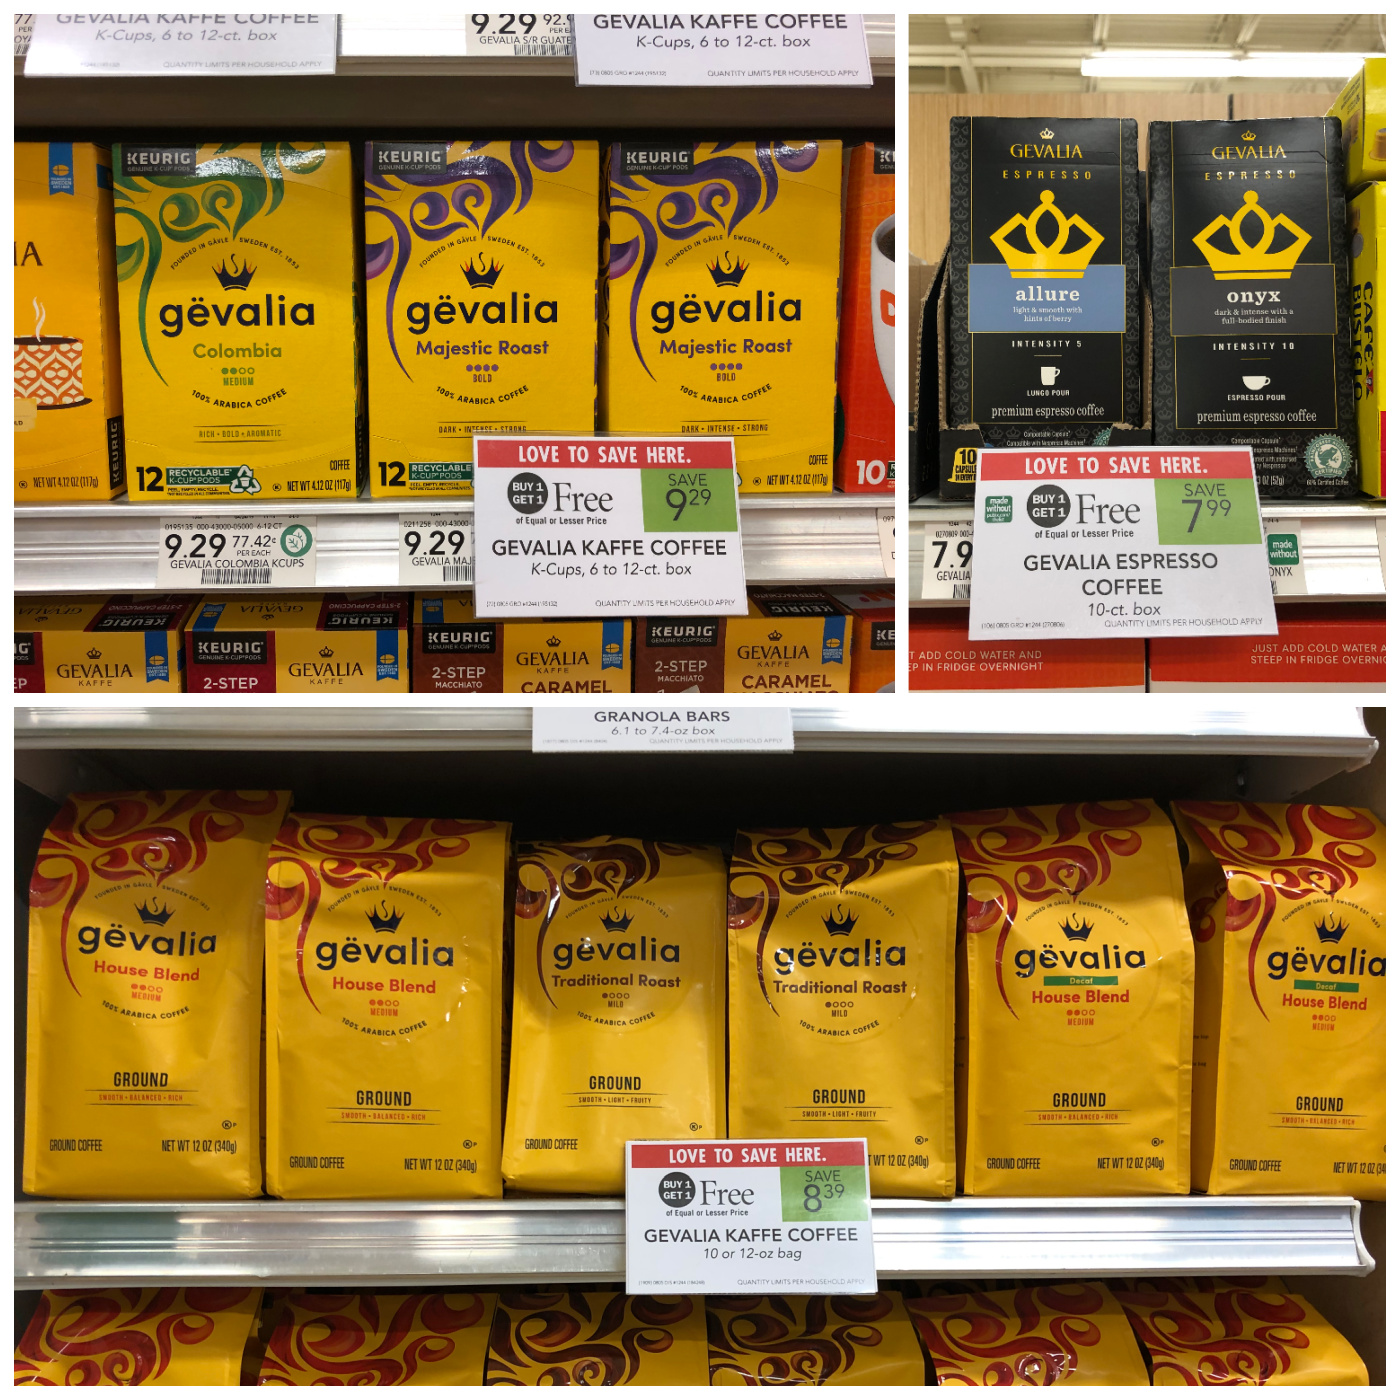 Start Your Day With The Coffee You Love - Gevalia Is BOGO At Publix! on I Heart Publix